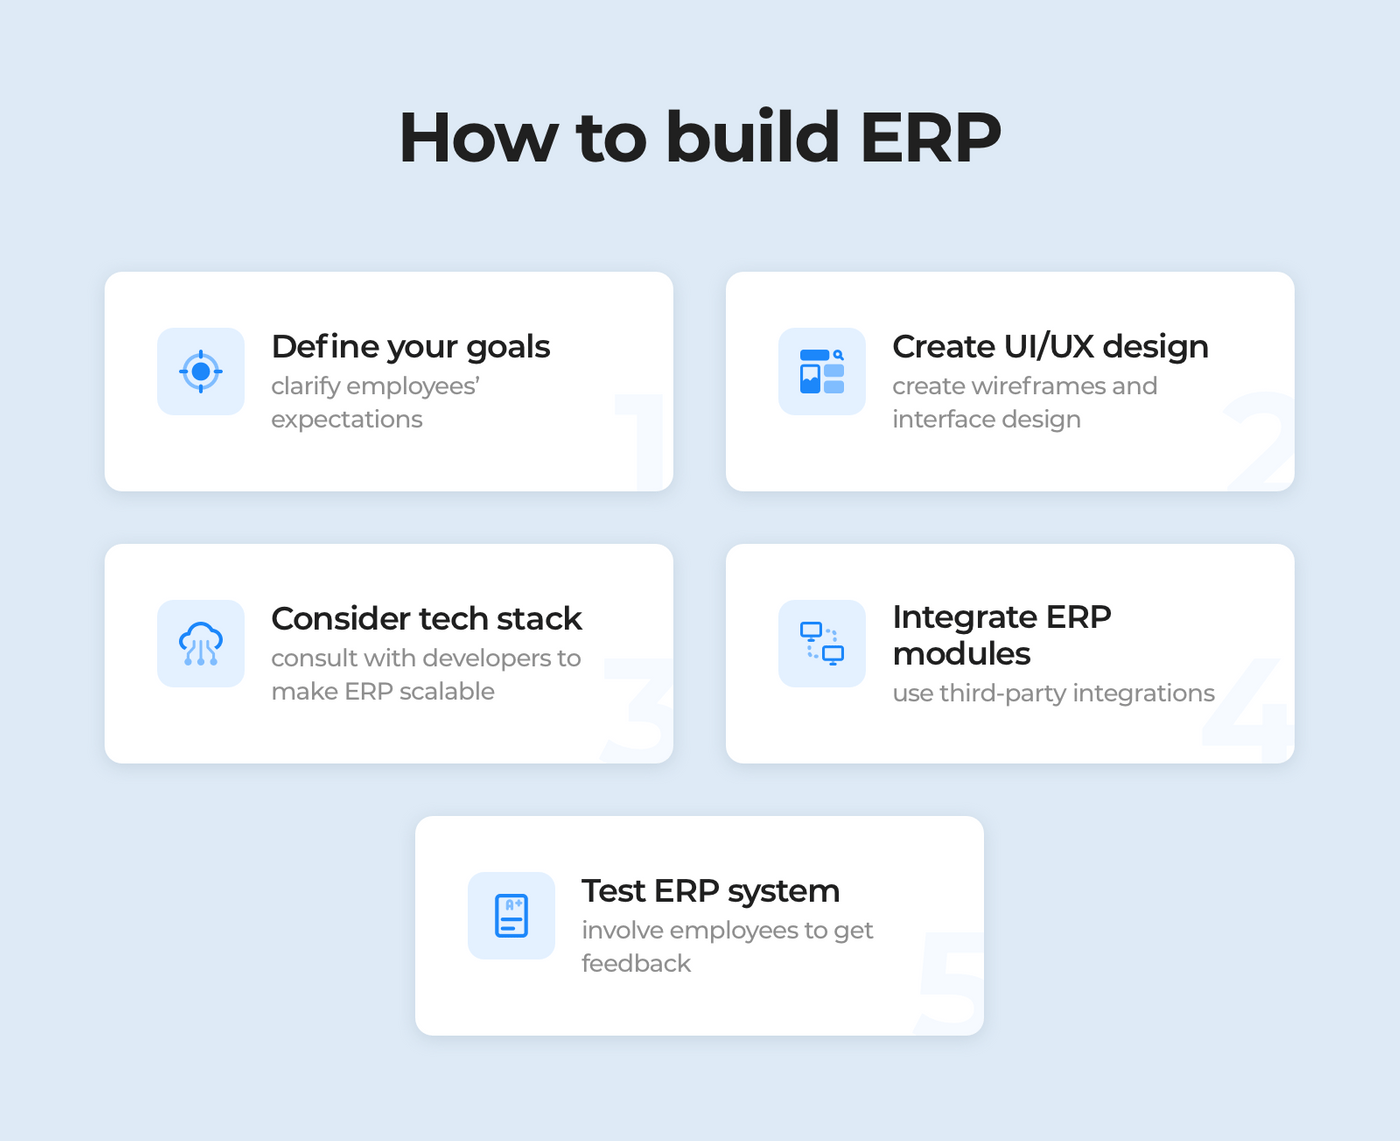 How to build ERP